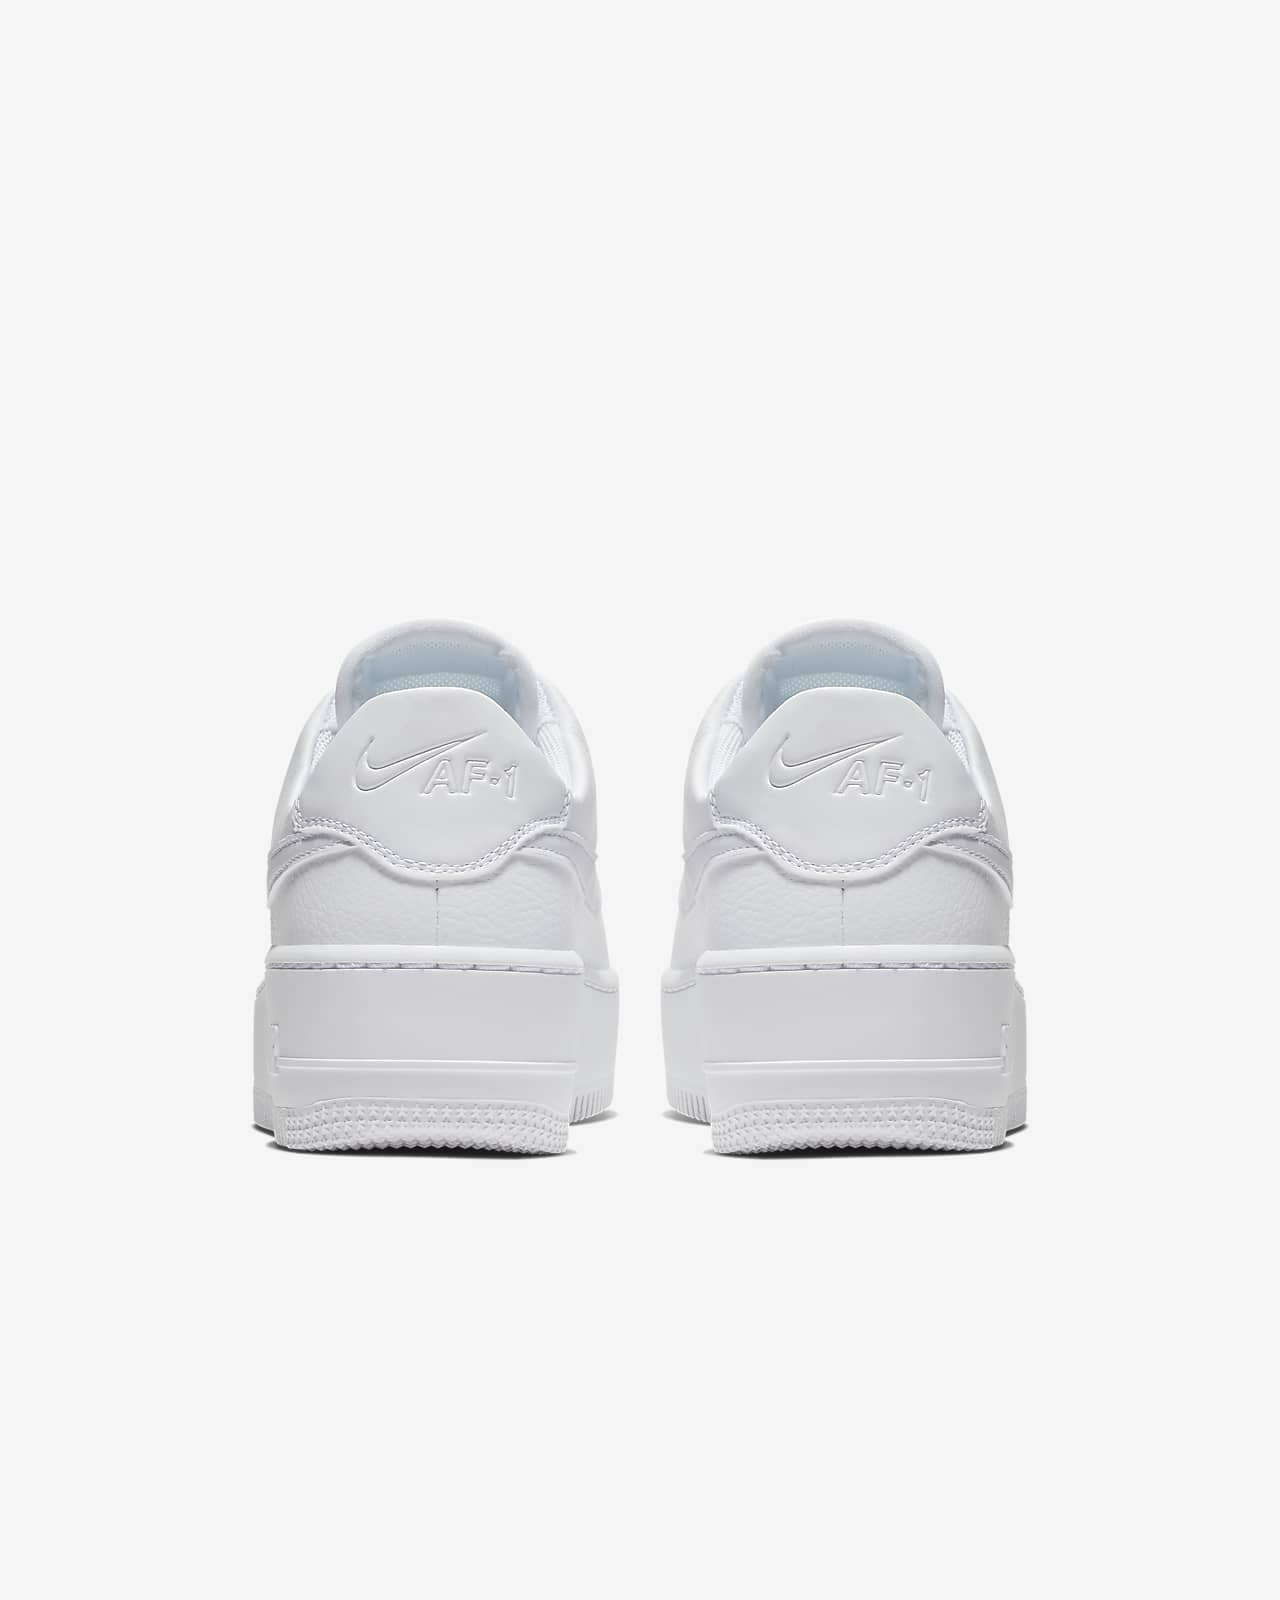 Nike Air Force 1 Sage Low Women S Shoe Nike Com Shop the iconic nike air force 1 shoes in low, mid & high top styles , '07 lv8, and a big kids' nike air force 1 low casual shoes. nike air force 1 sage low women s shoe